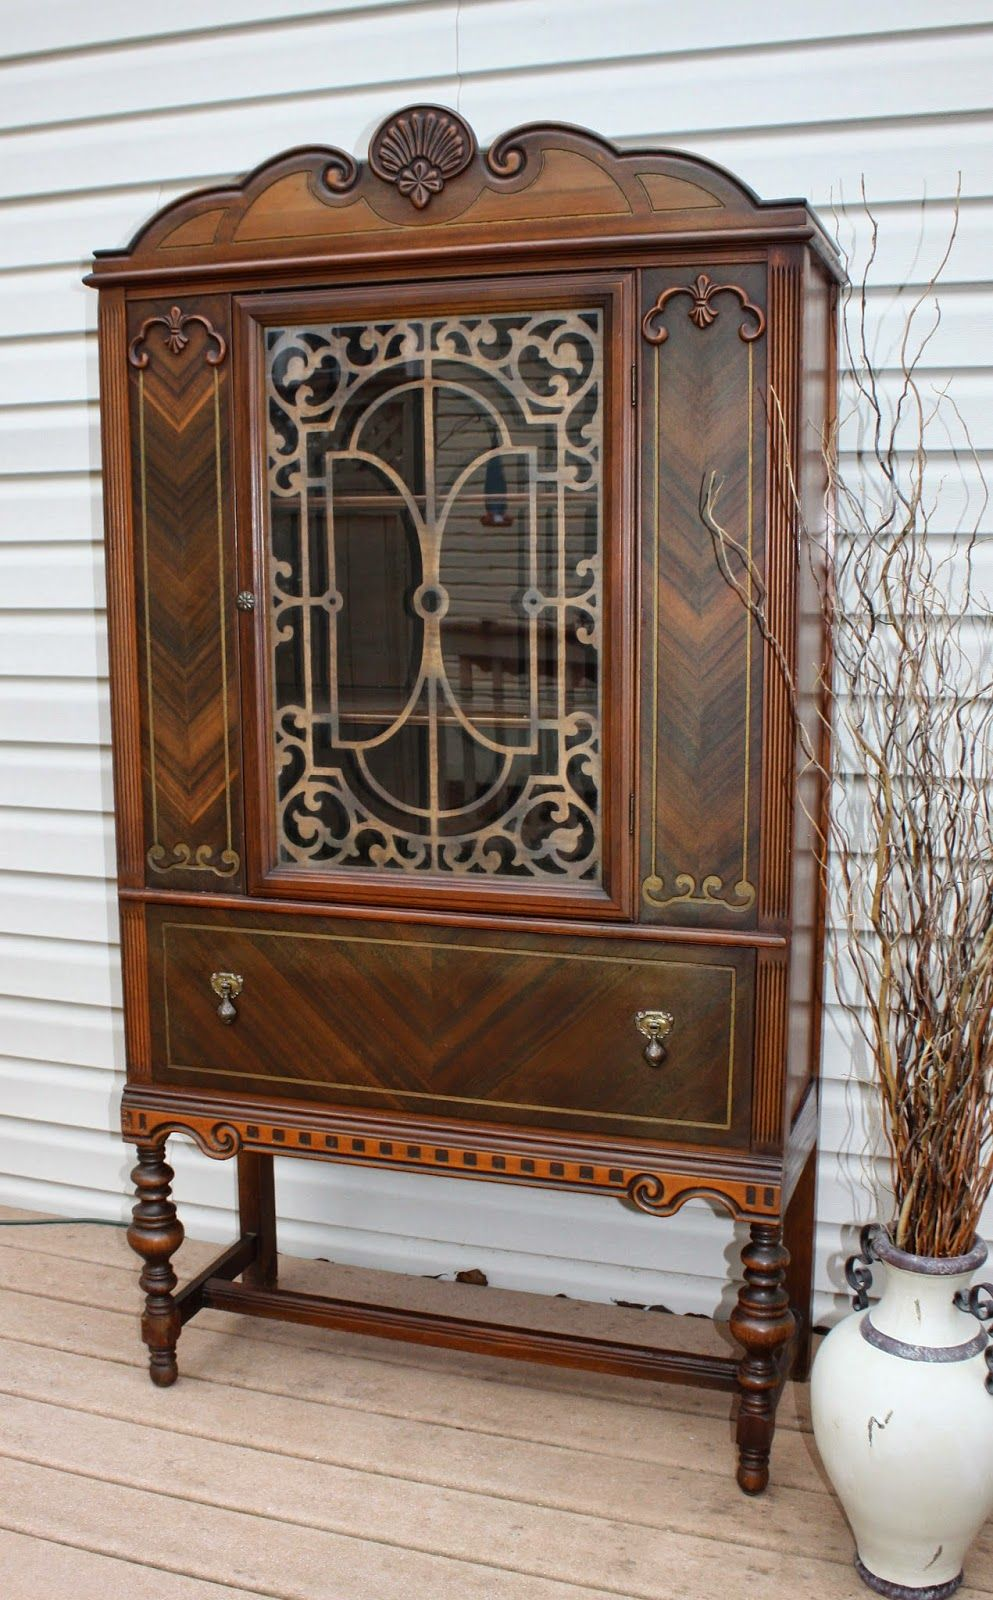 The Black Sheep Shoppe: Refurbished Vintage 1920's China Cabinet - Refurbished Vintage 1920's China Cabinet FURNITURE And HOME